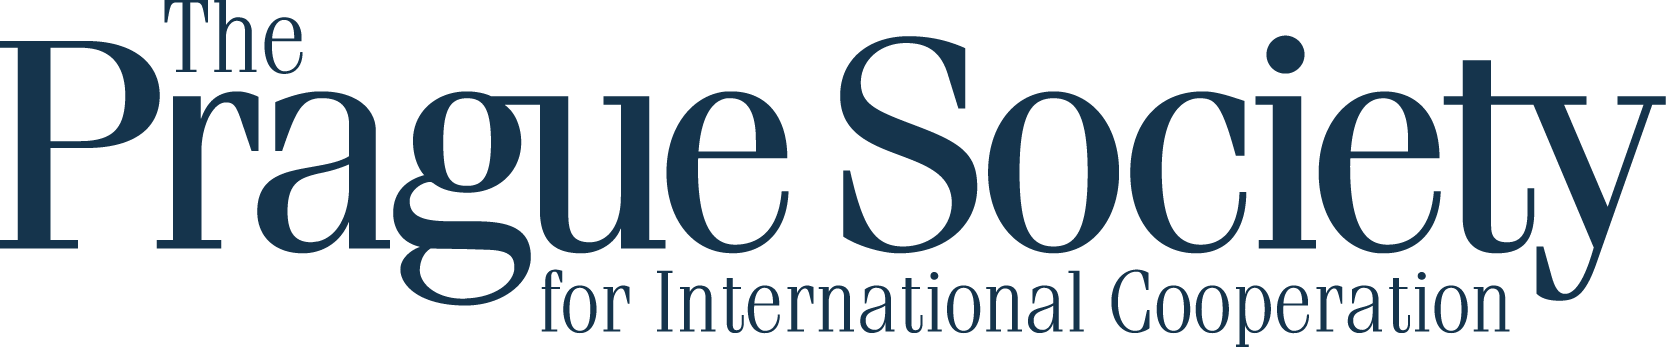 The Prague Society for International Cooperation